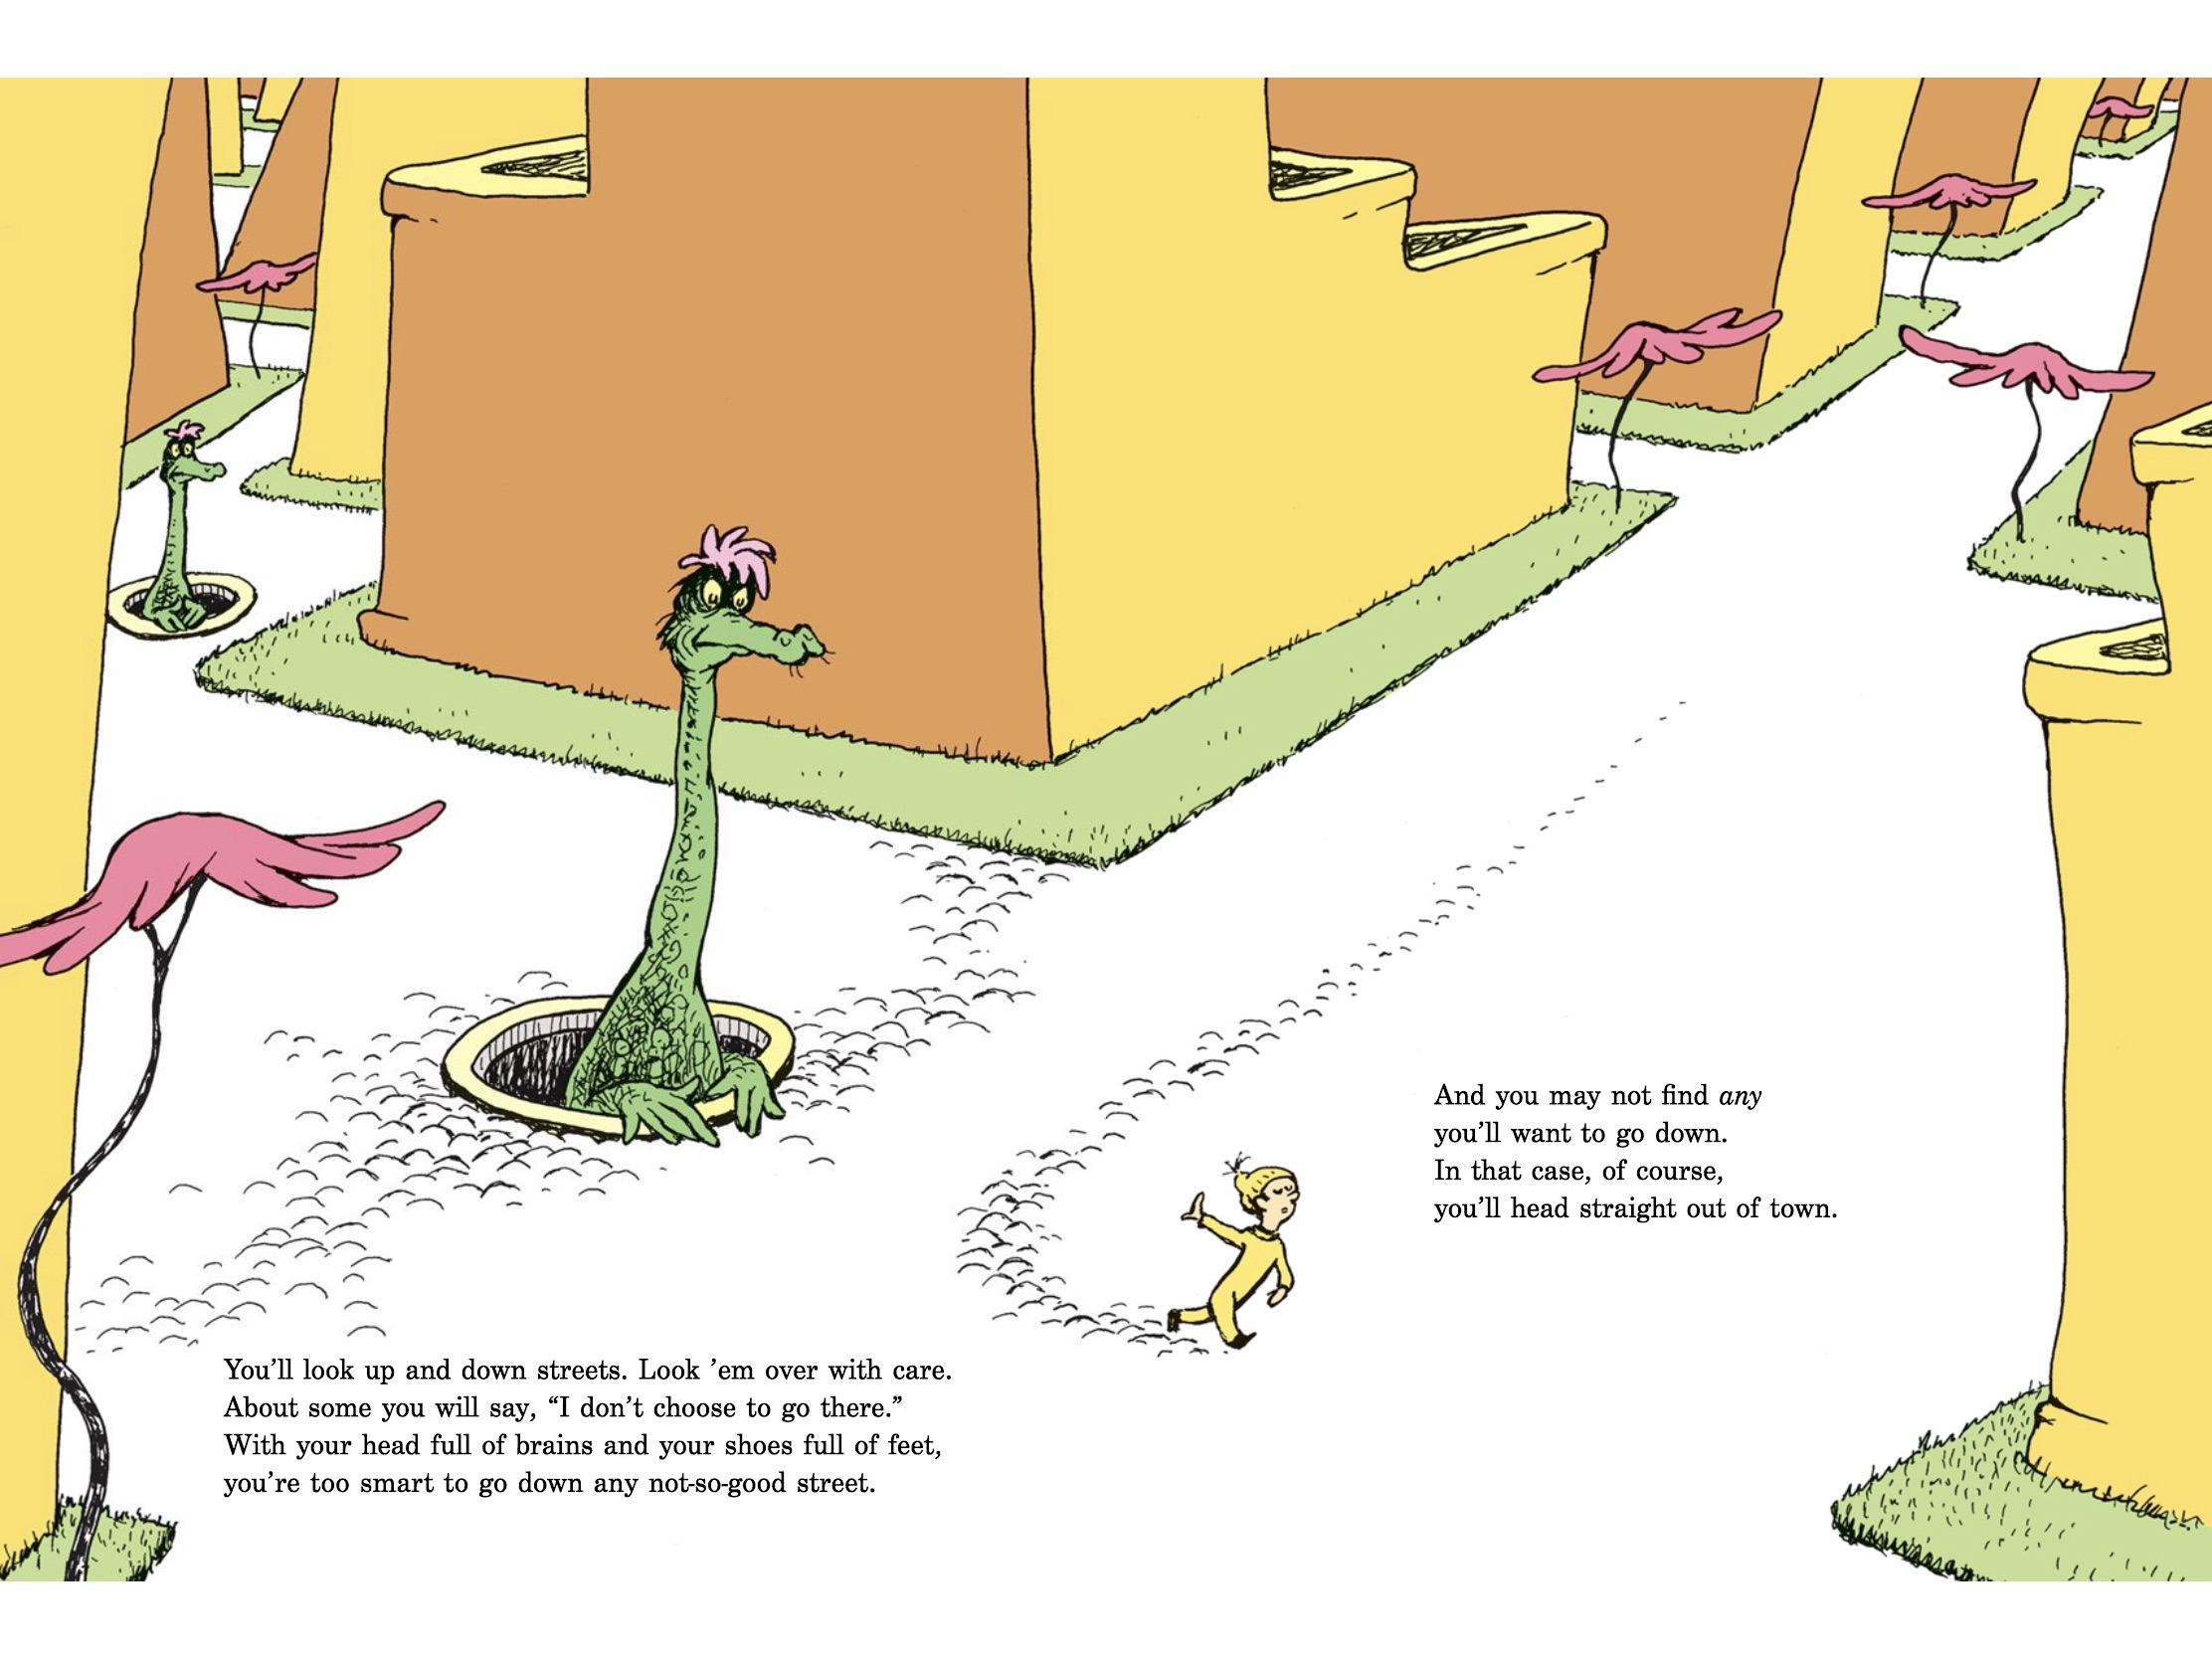 dr seuss - oh the places youll go3.jpg